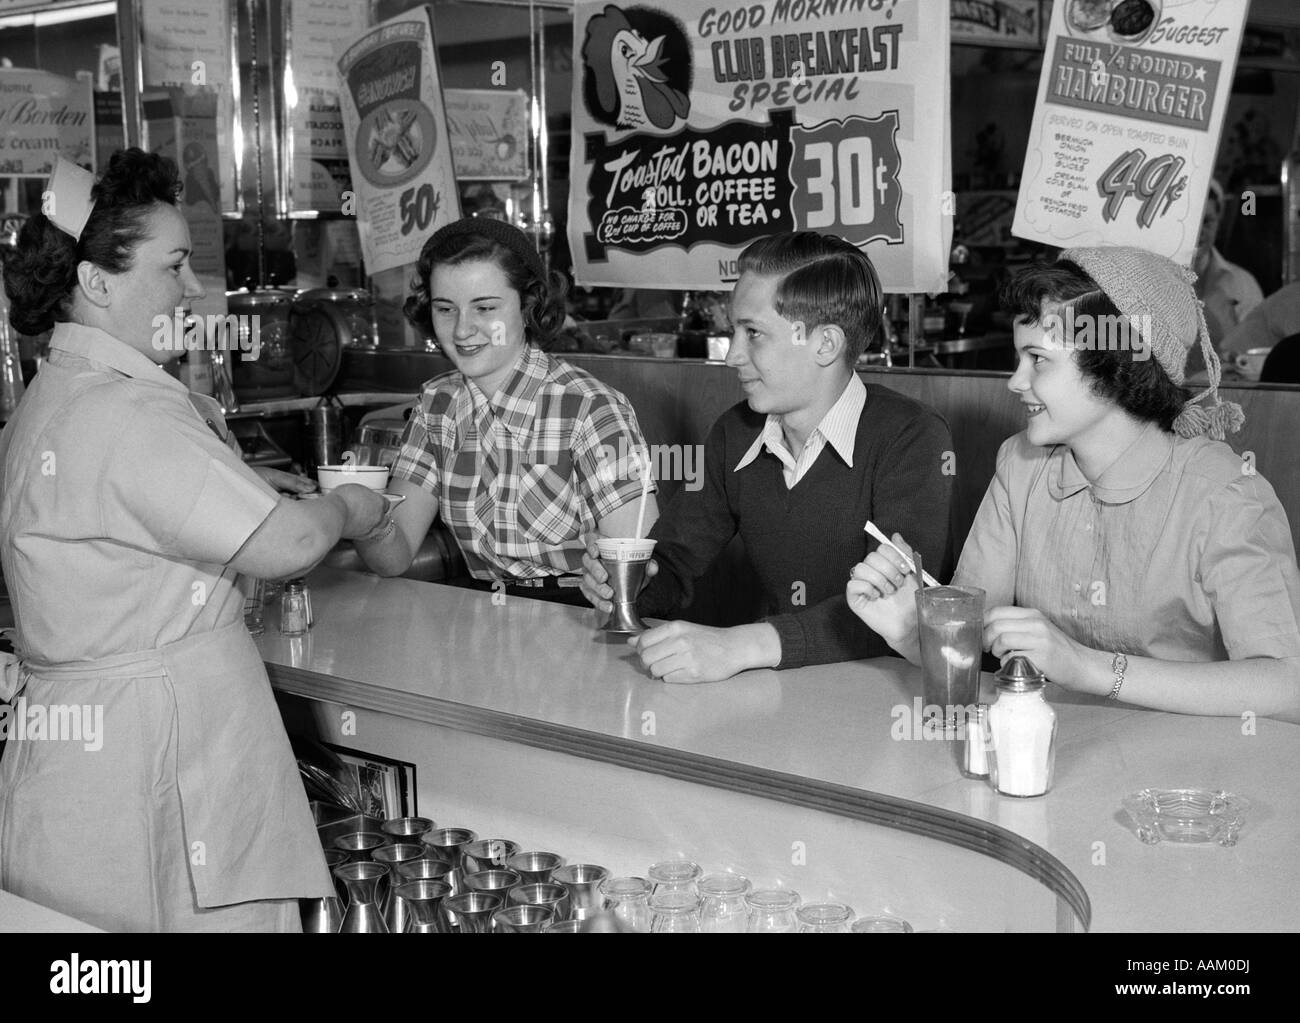 1950s Diner Black White High Resolution Stock Photography And Images Alamy